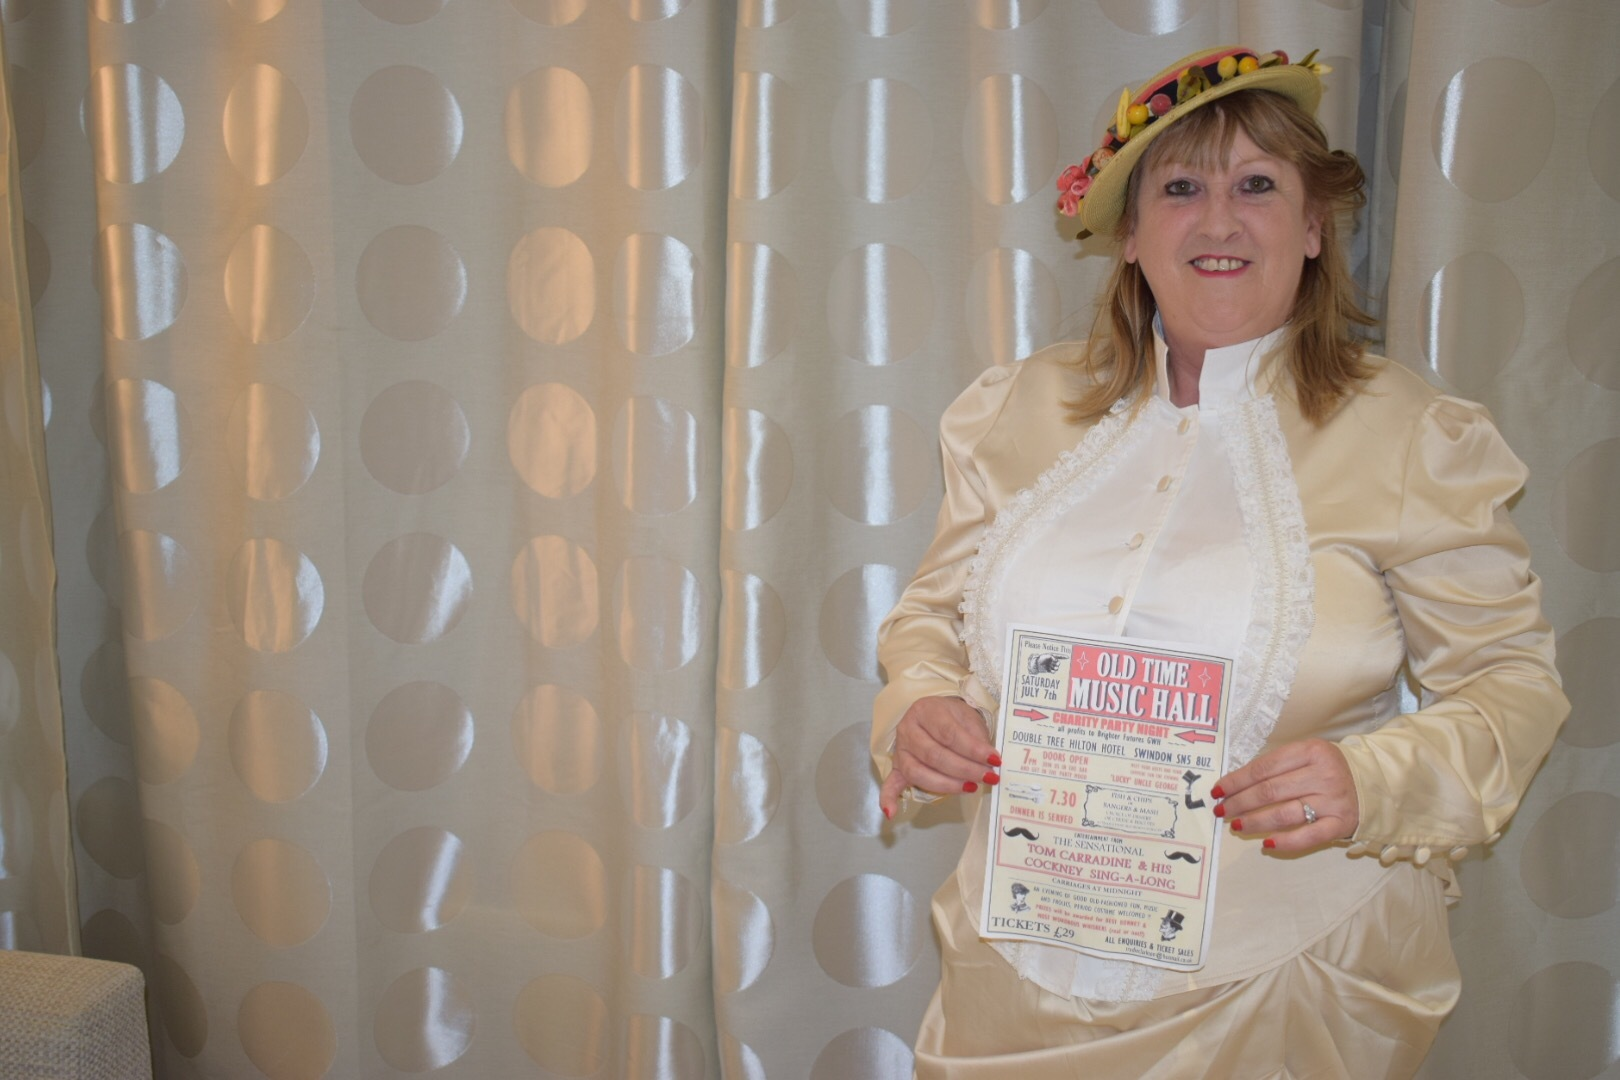 Event organiser Trudie Clarkson in period dress